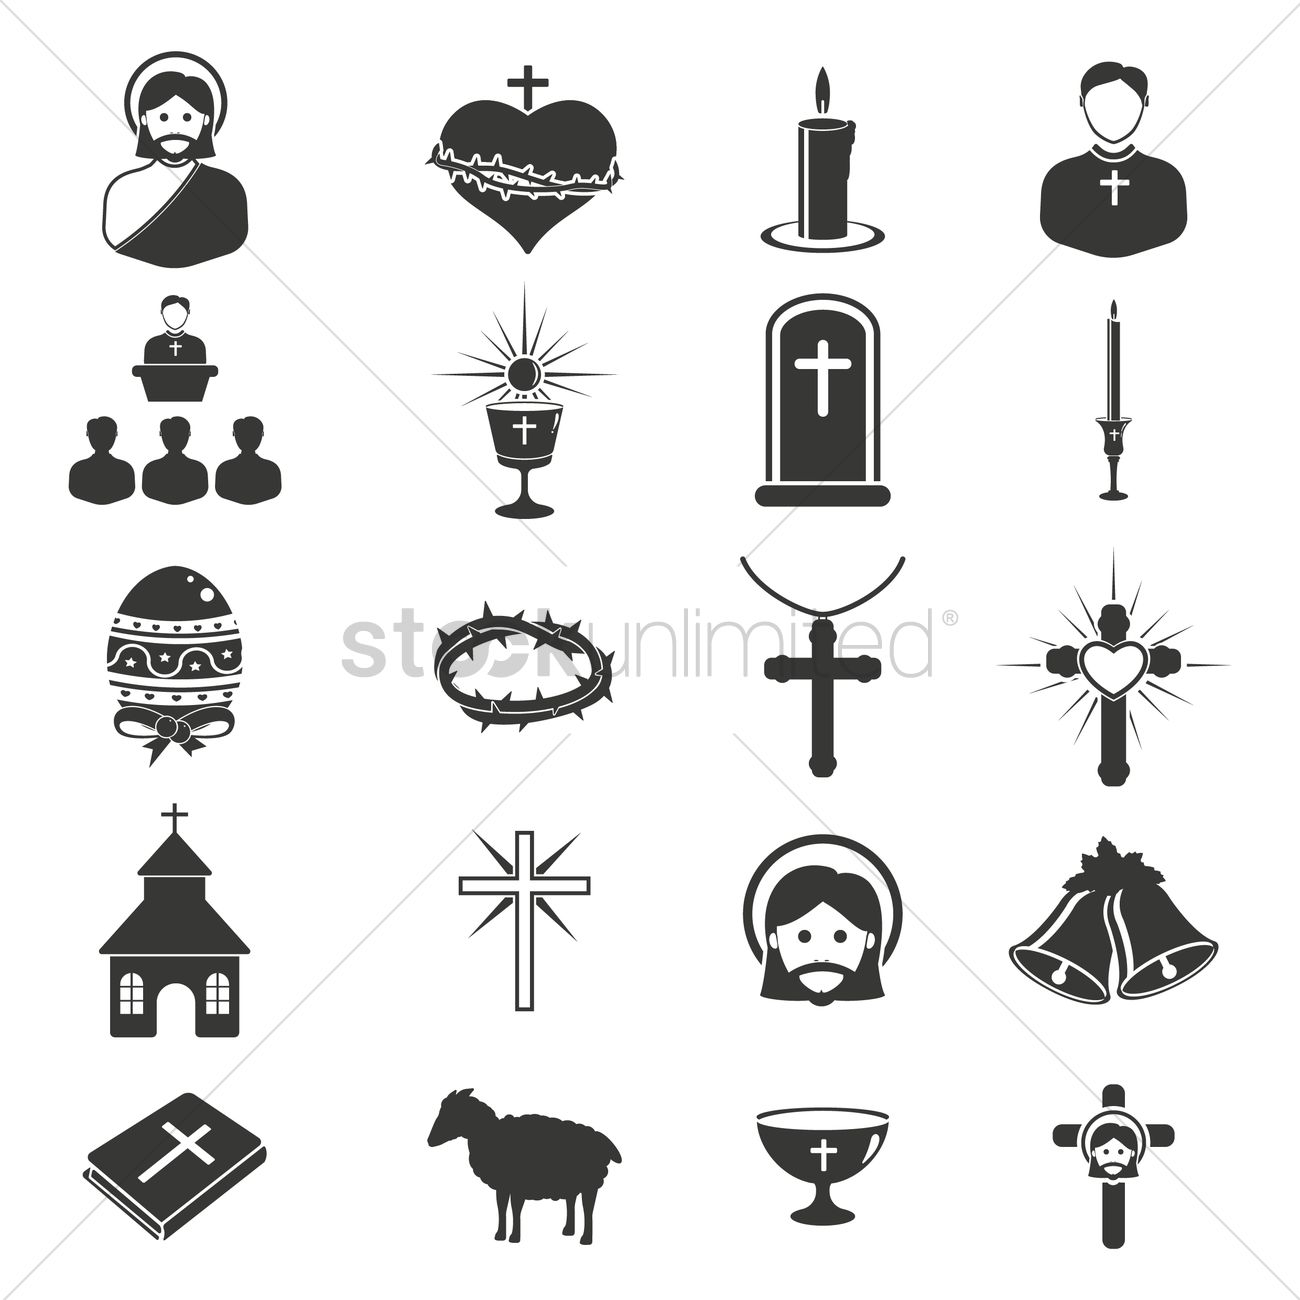 1452 Ecarteurs Sacoches Cavalieres Vt 125 Shadow additionally Business Strategy Icon Set 1579926 furthermore 13205037 also Perfiles 43969360 also 13131226. on 1300